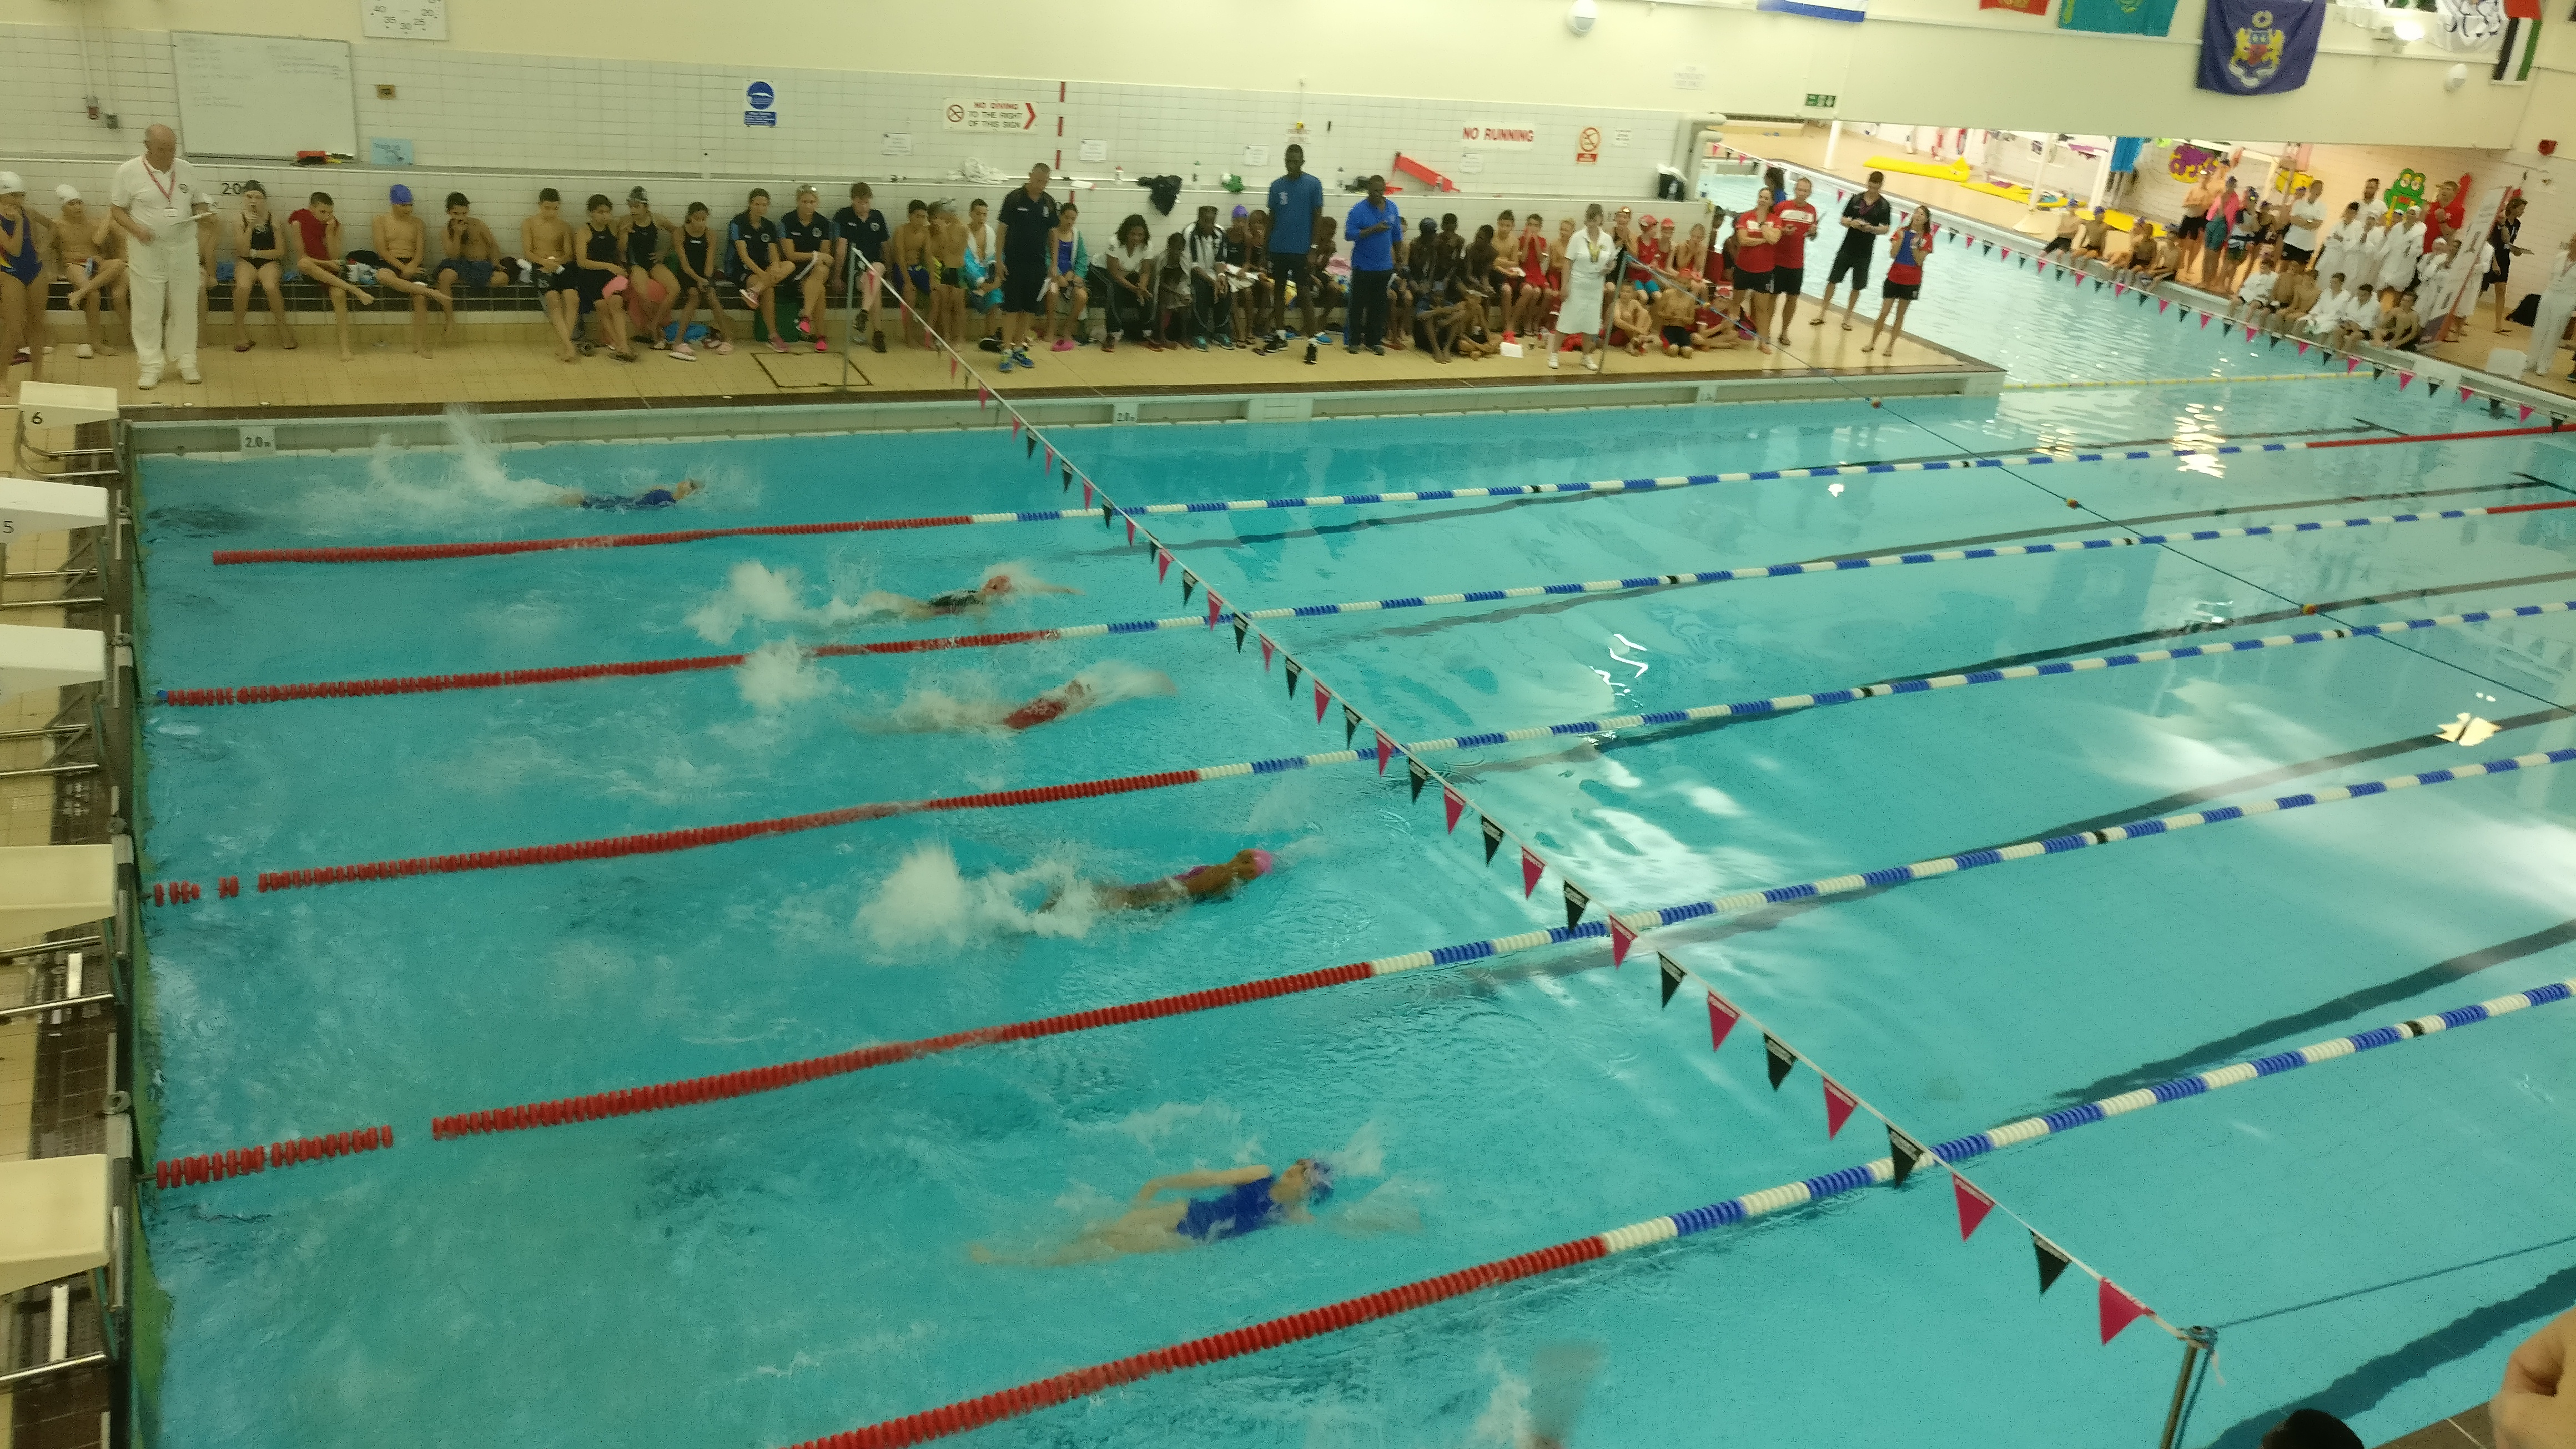 Cobis primary games 11 13 april 2017 council of british international schools for Primary games swimming pool sid